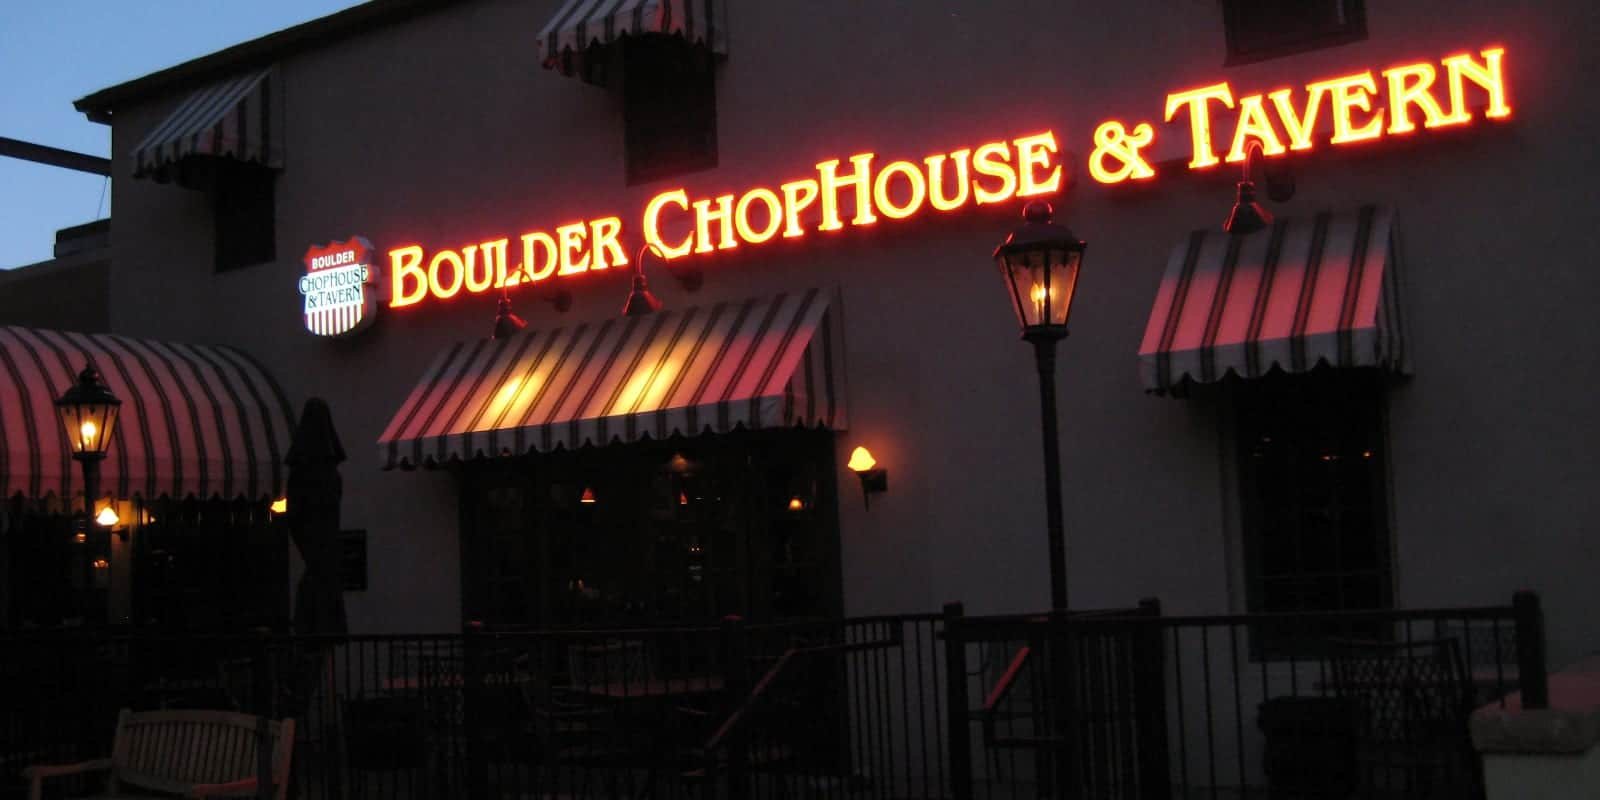 Boulder Chophouse and Tavern